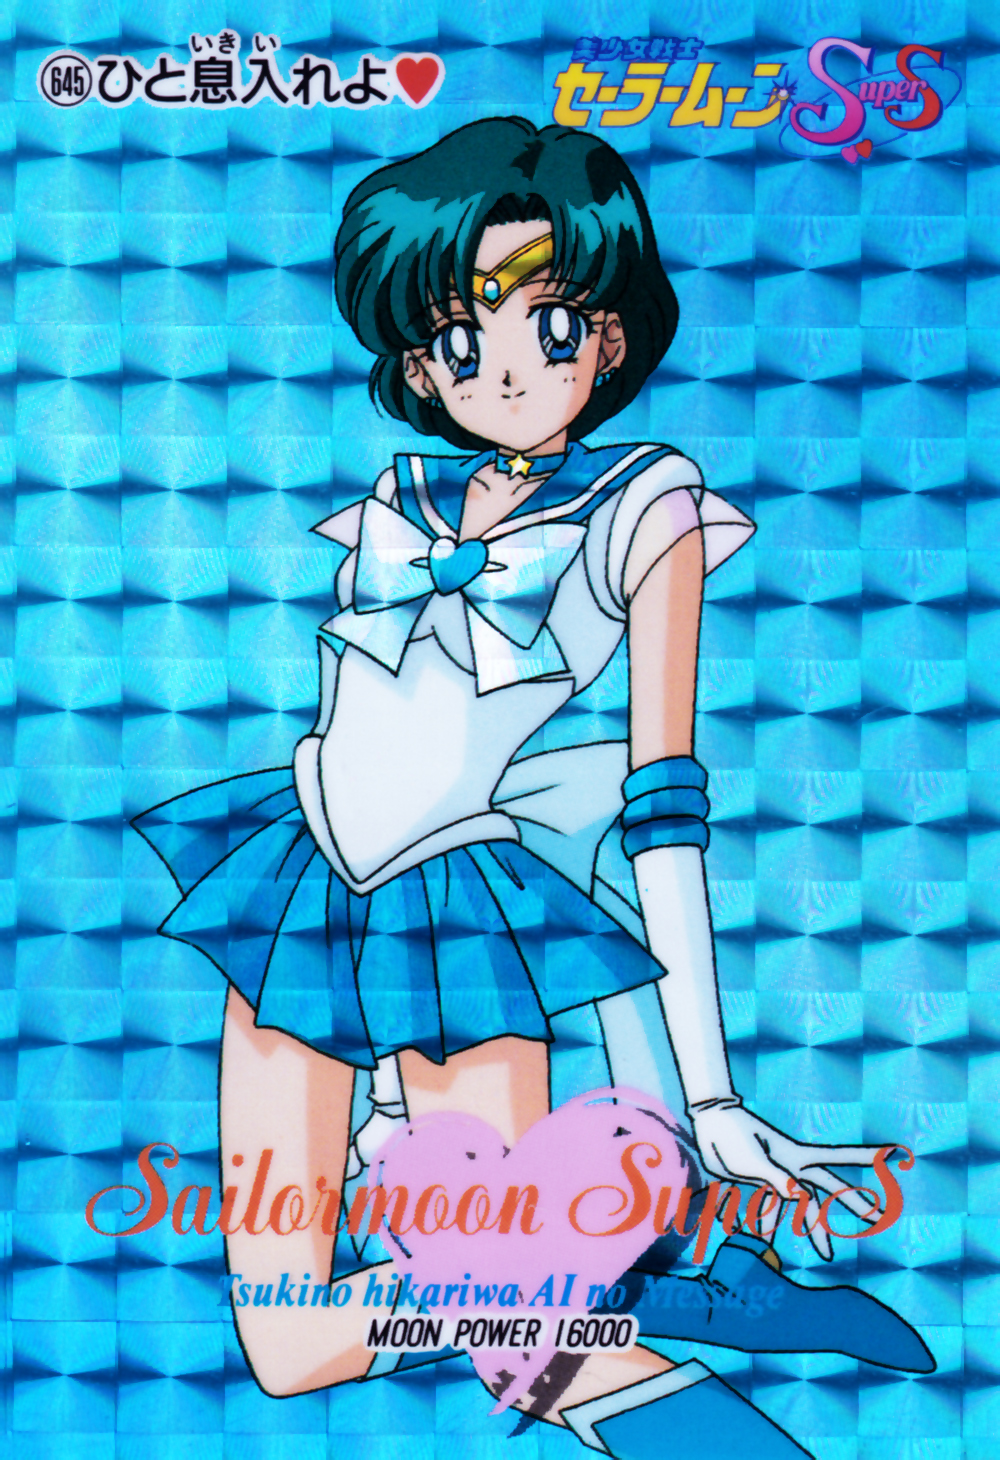 Sailormoon-pp14a-02